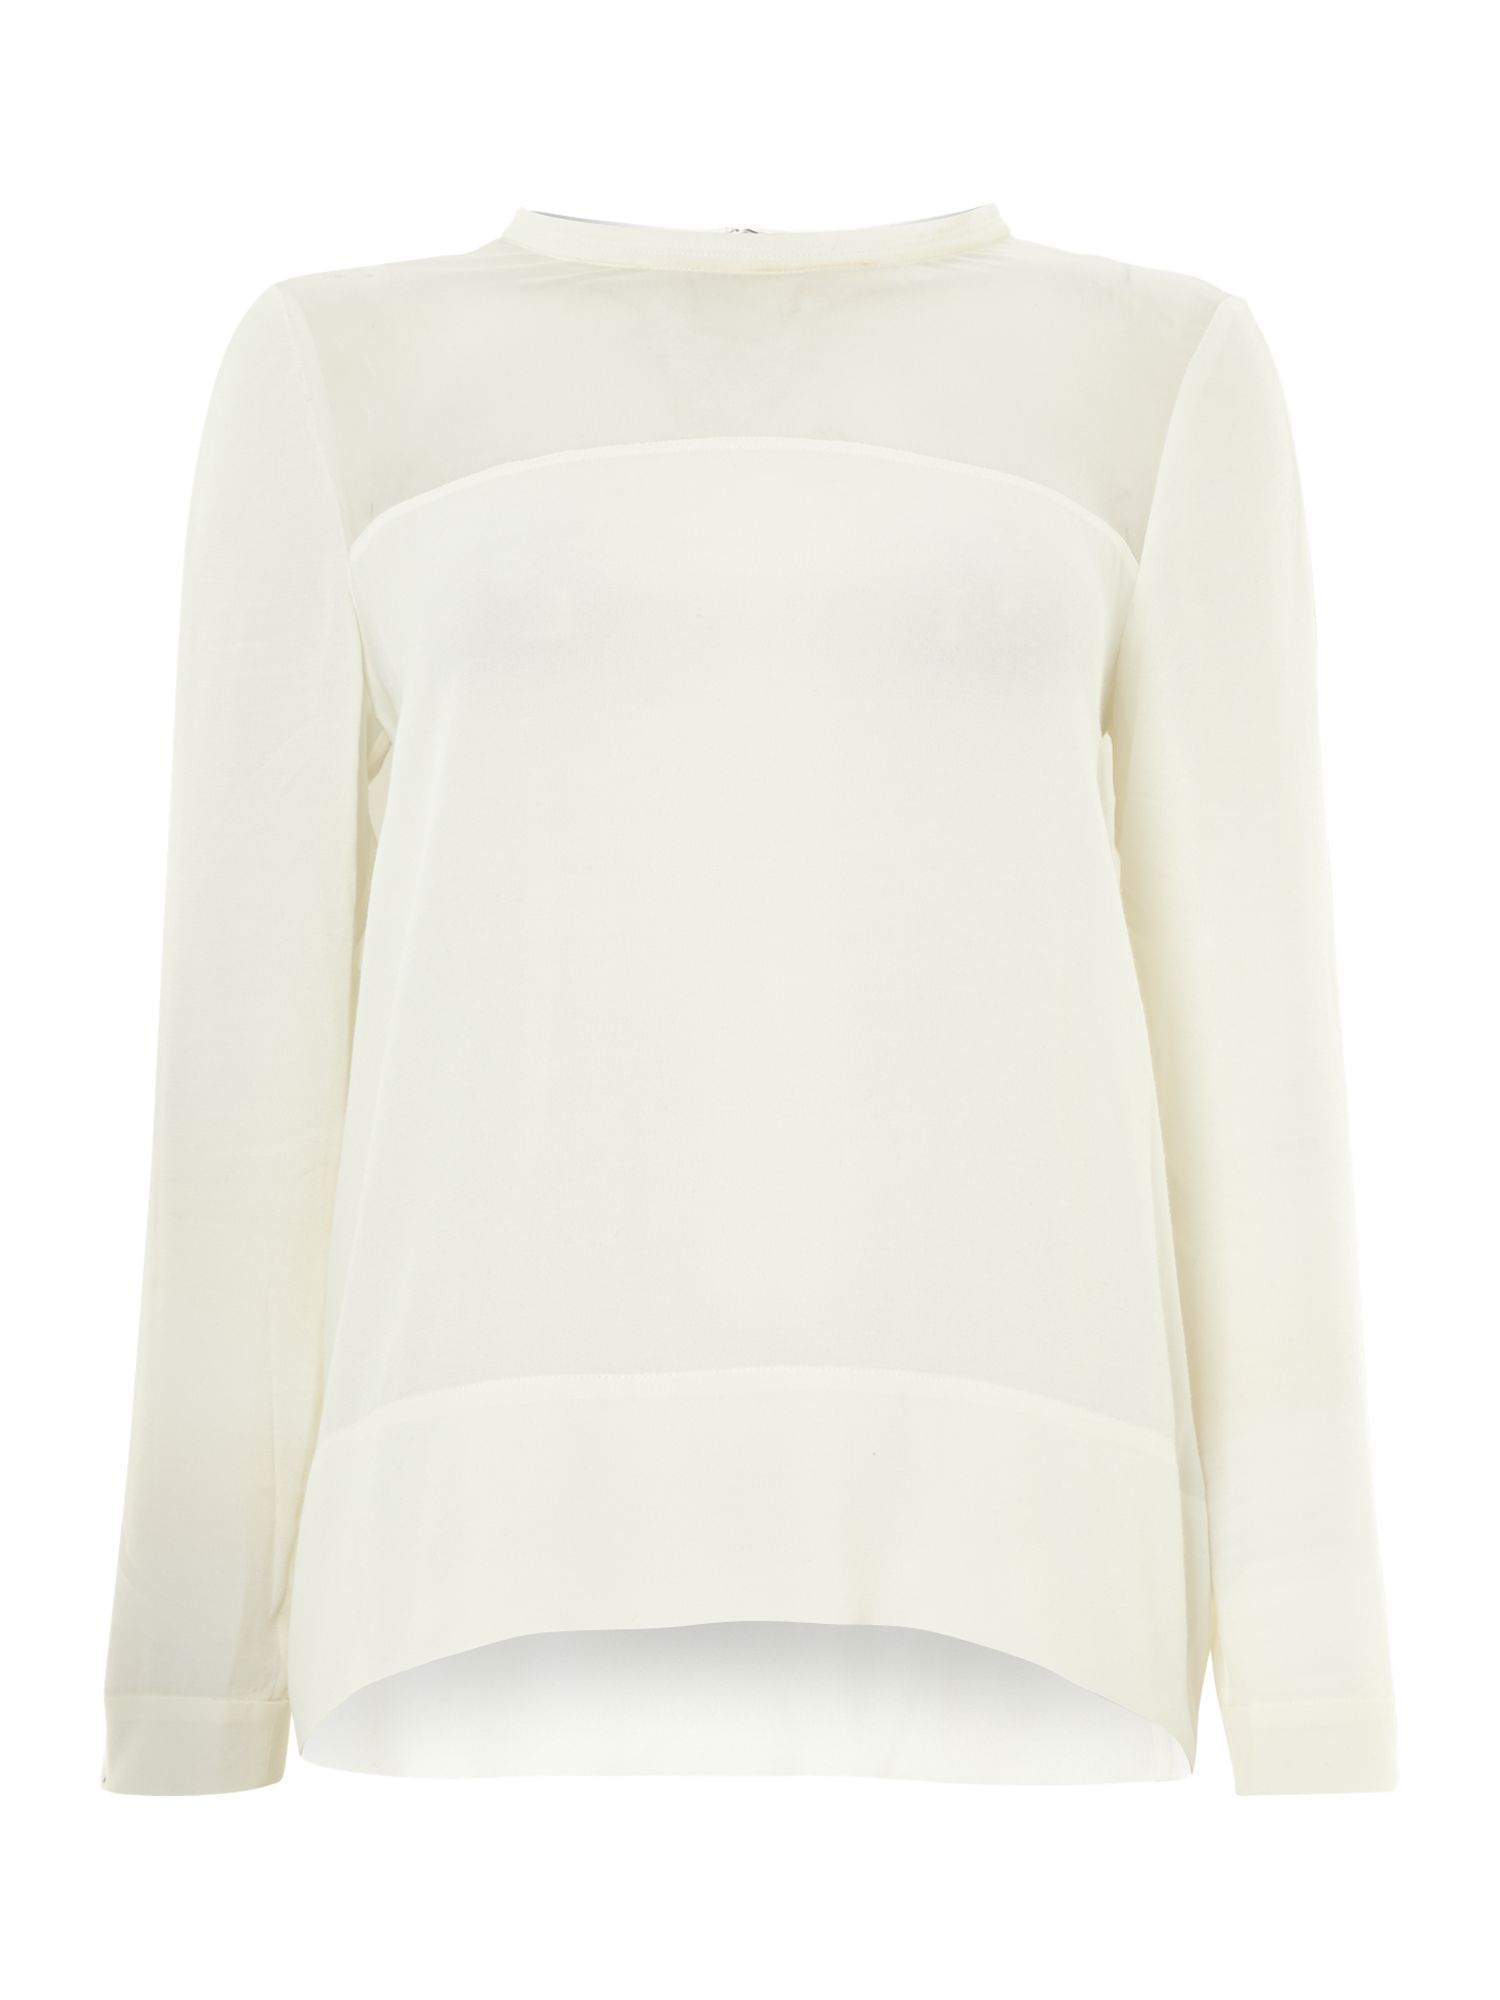 Long sleeve round neck arm detail top